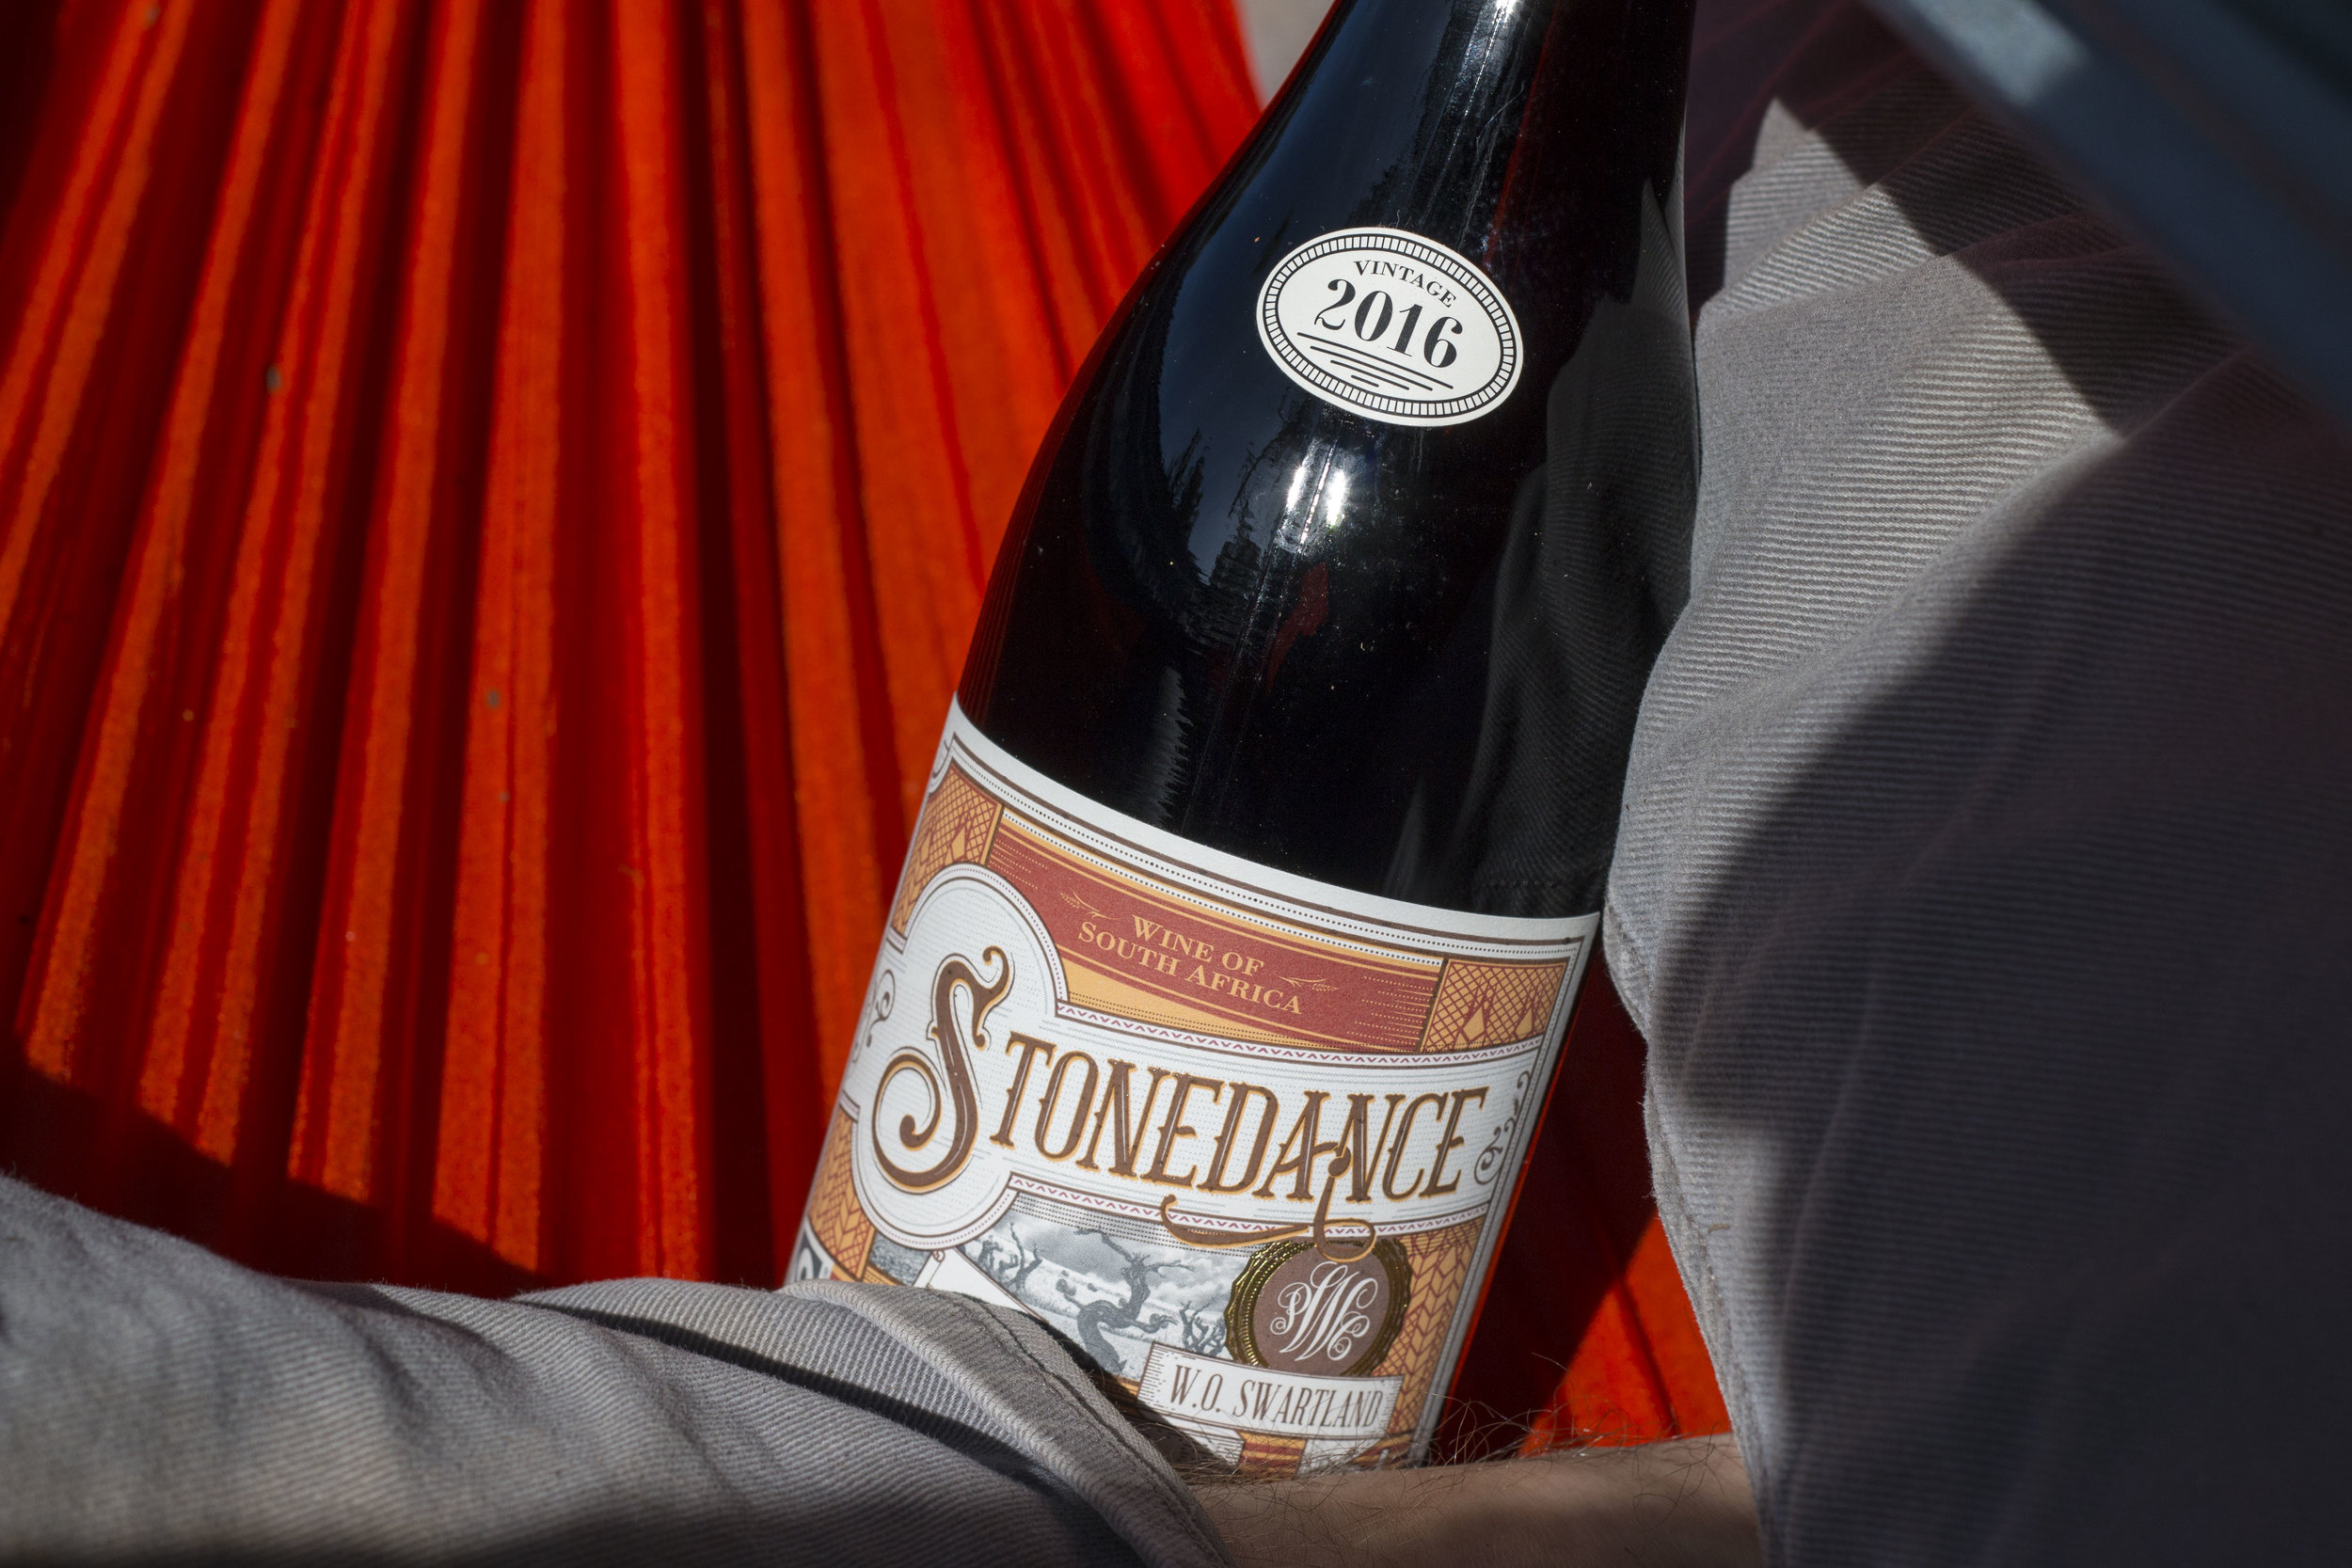 Stonedance Fairtrade South African Red Wine